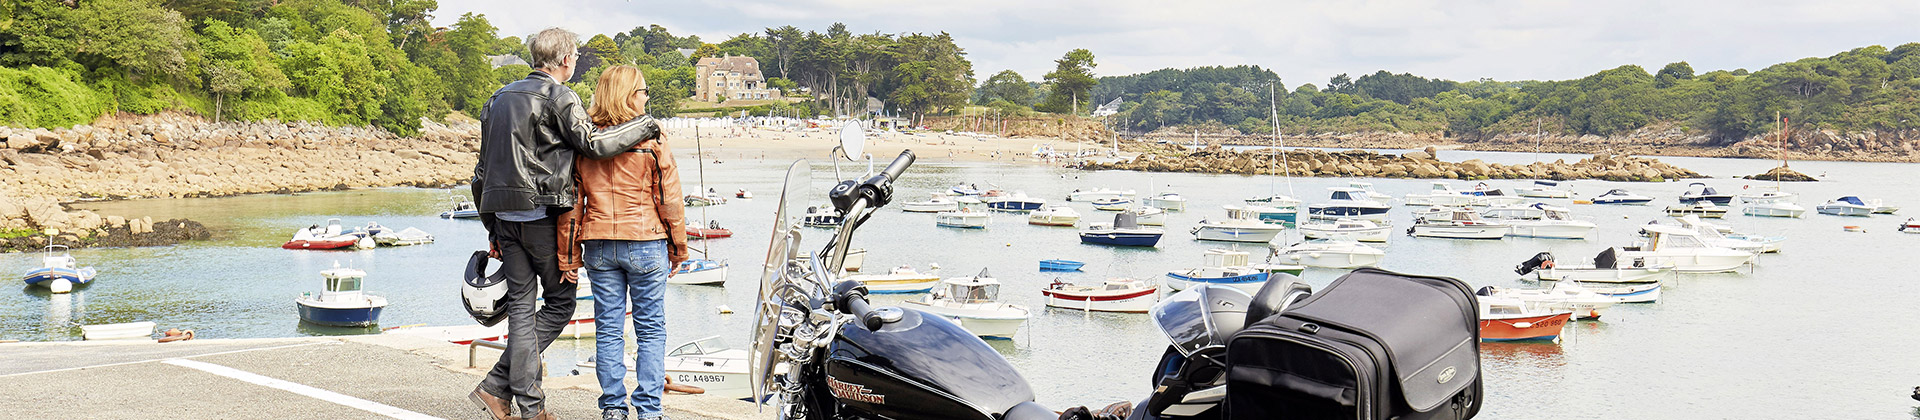 Turnkey break in Brittany